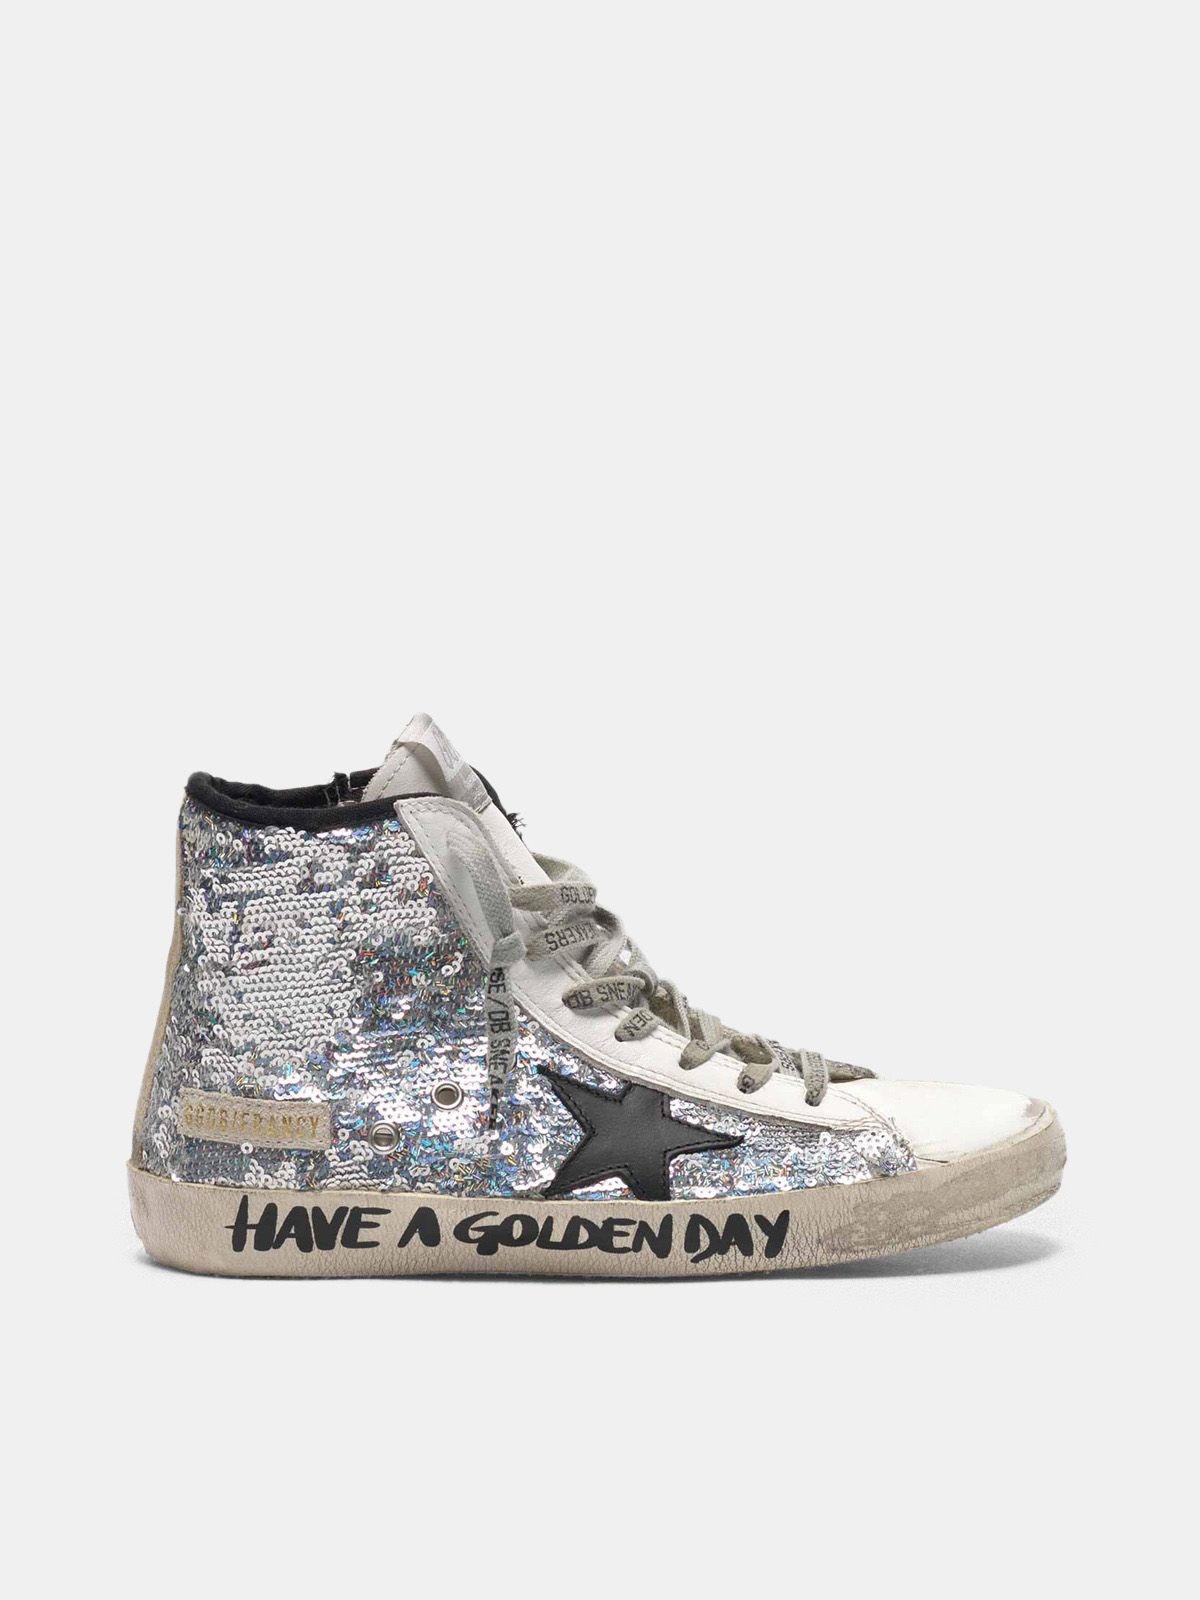 Golden Goose - Francy sneakers with silver sequins and handwritten lettering in